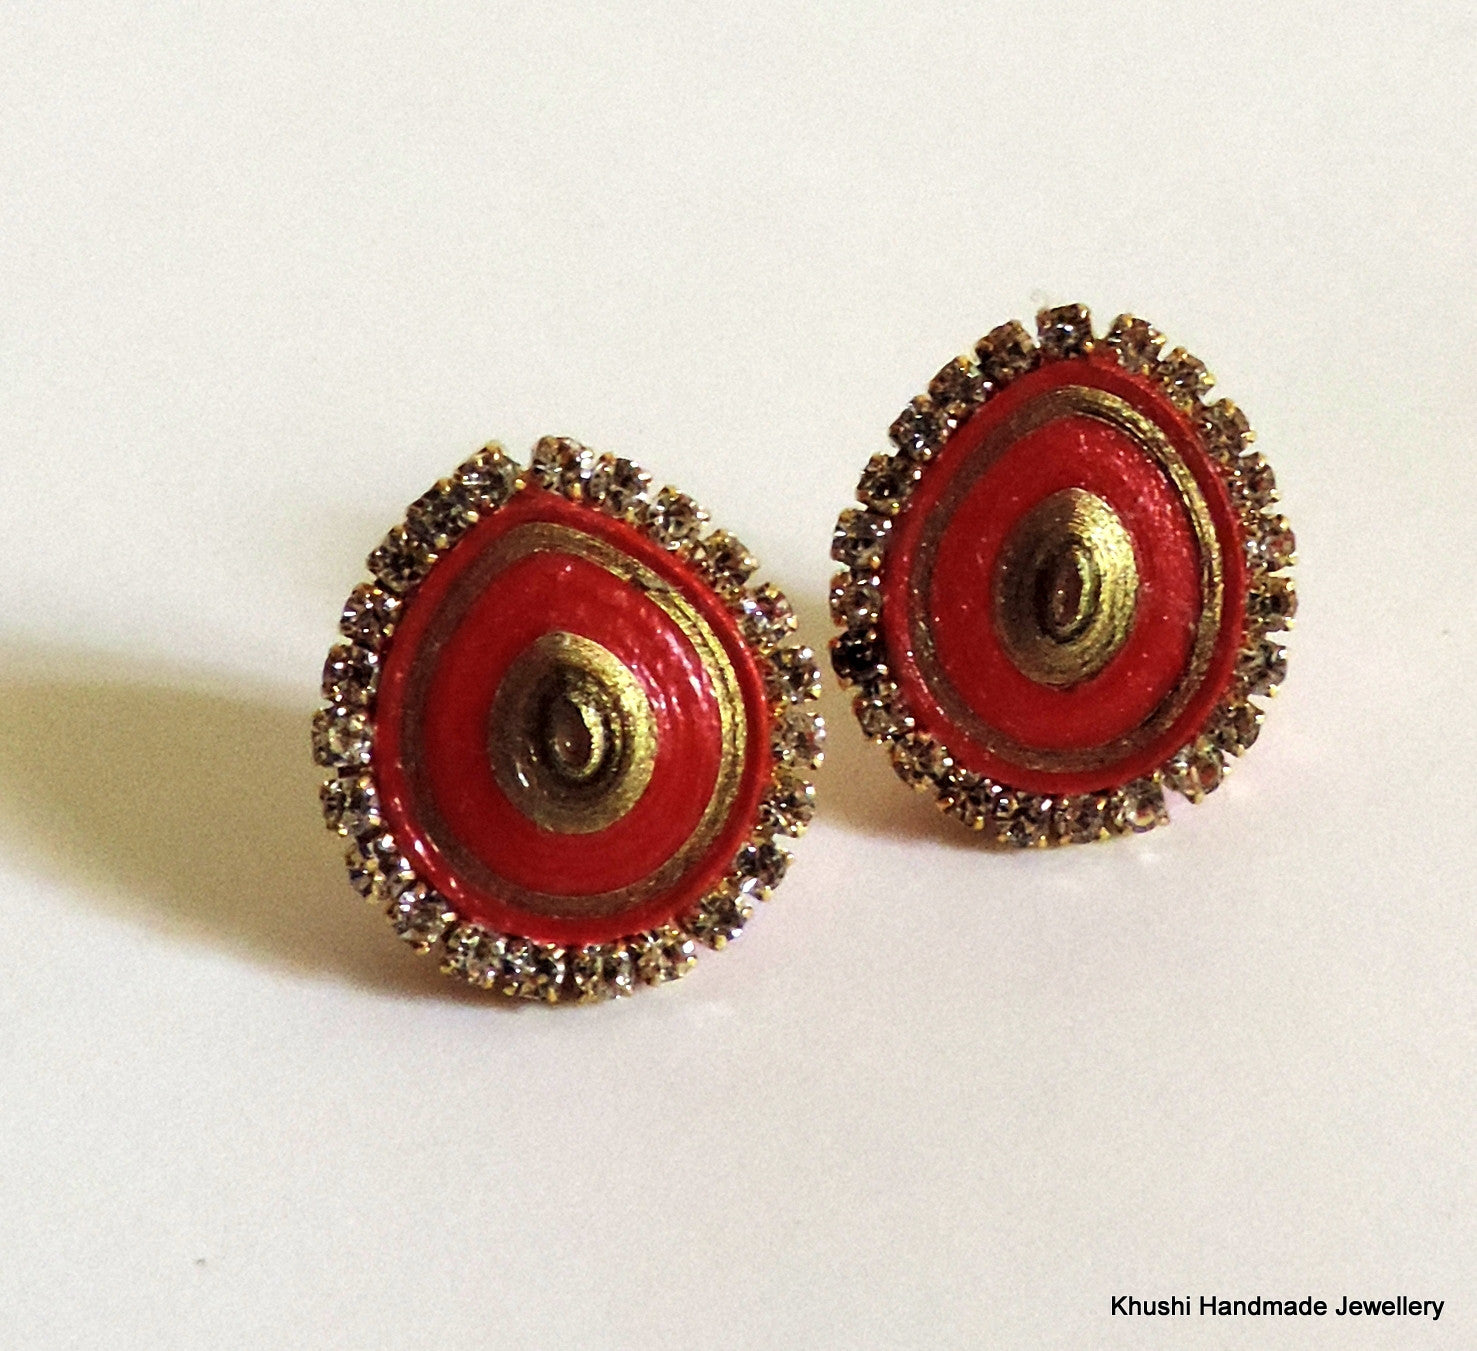 Red studs with stone lining - Khushi Handmade Jewellery